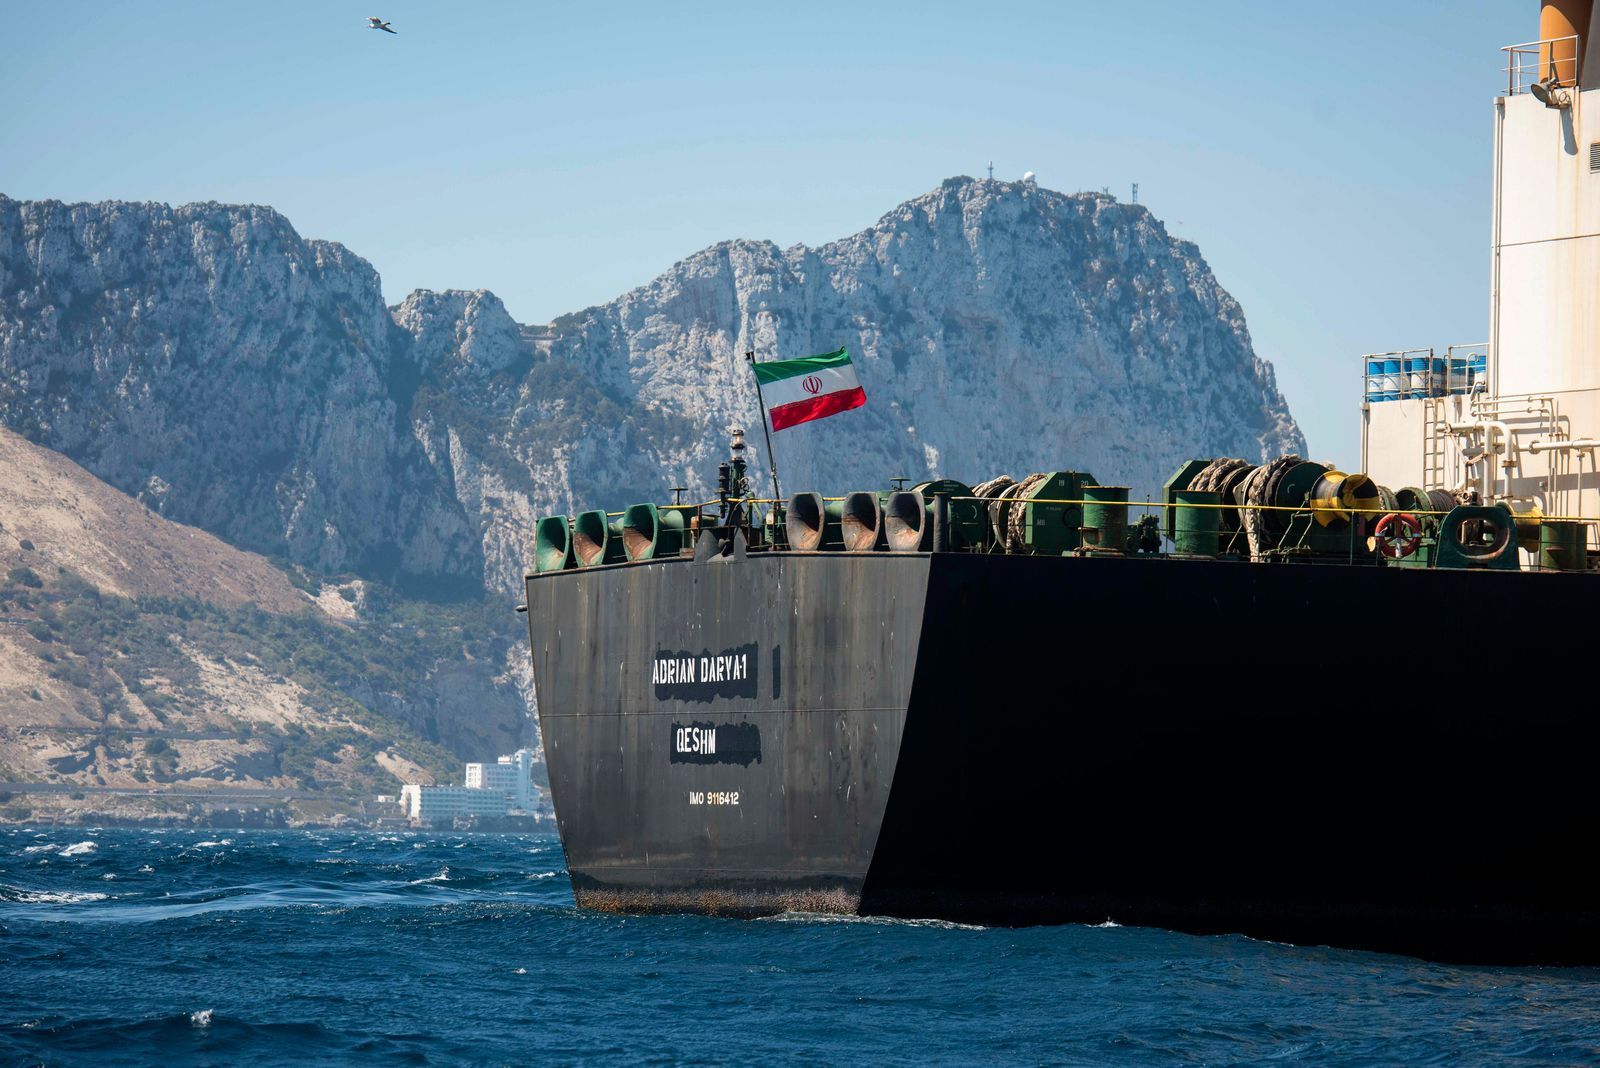 Renamed Adrian Aryra 1 super tanker hosting an Iranian flag sails in the waters in the British territory of Gibraltar, Sunday, Aug. 18, 2019.{ } (AP Photo/Marcos Moreno)